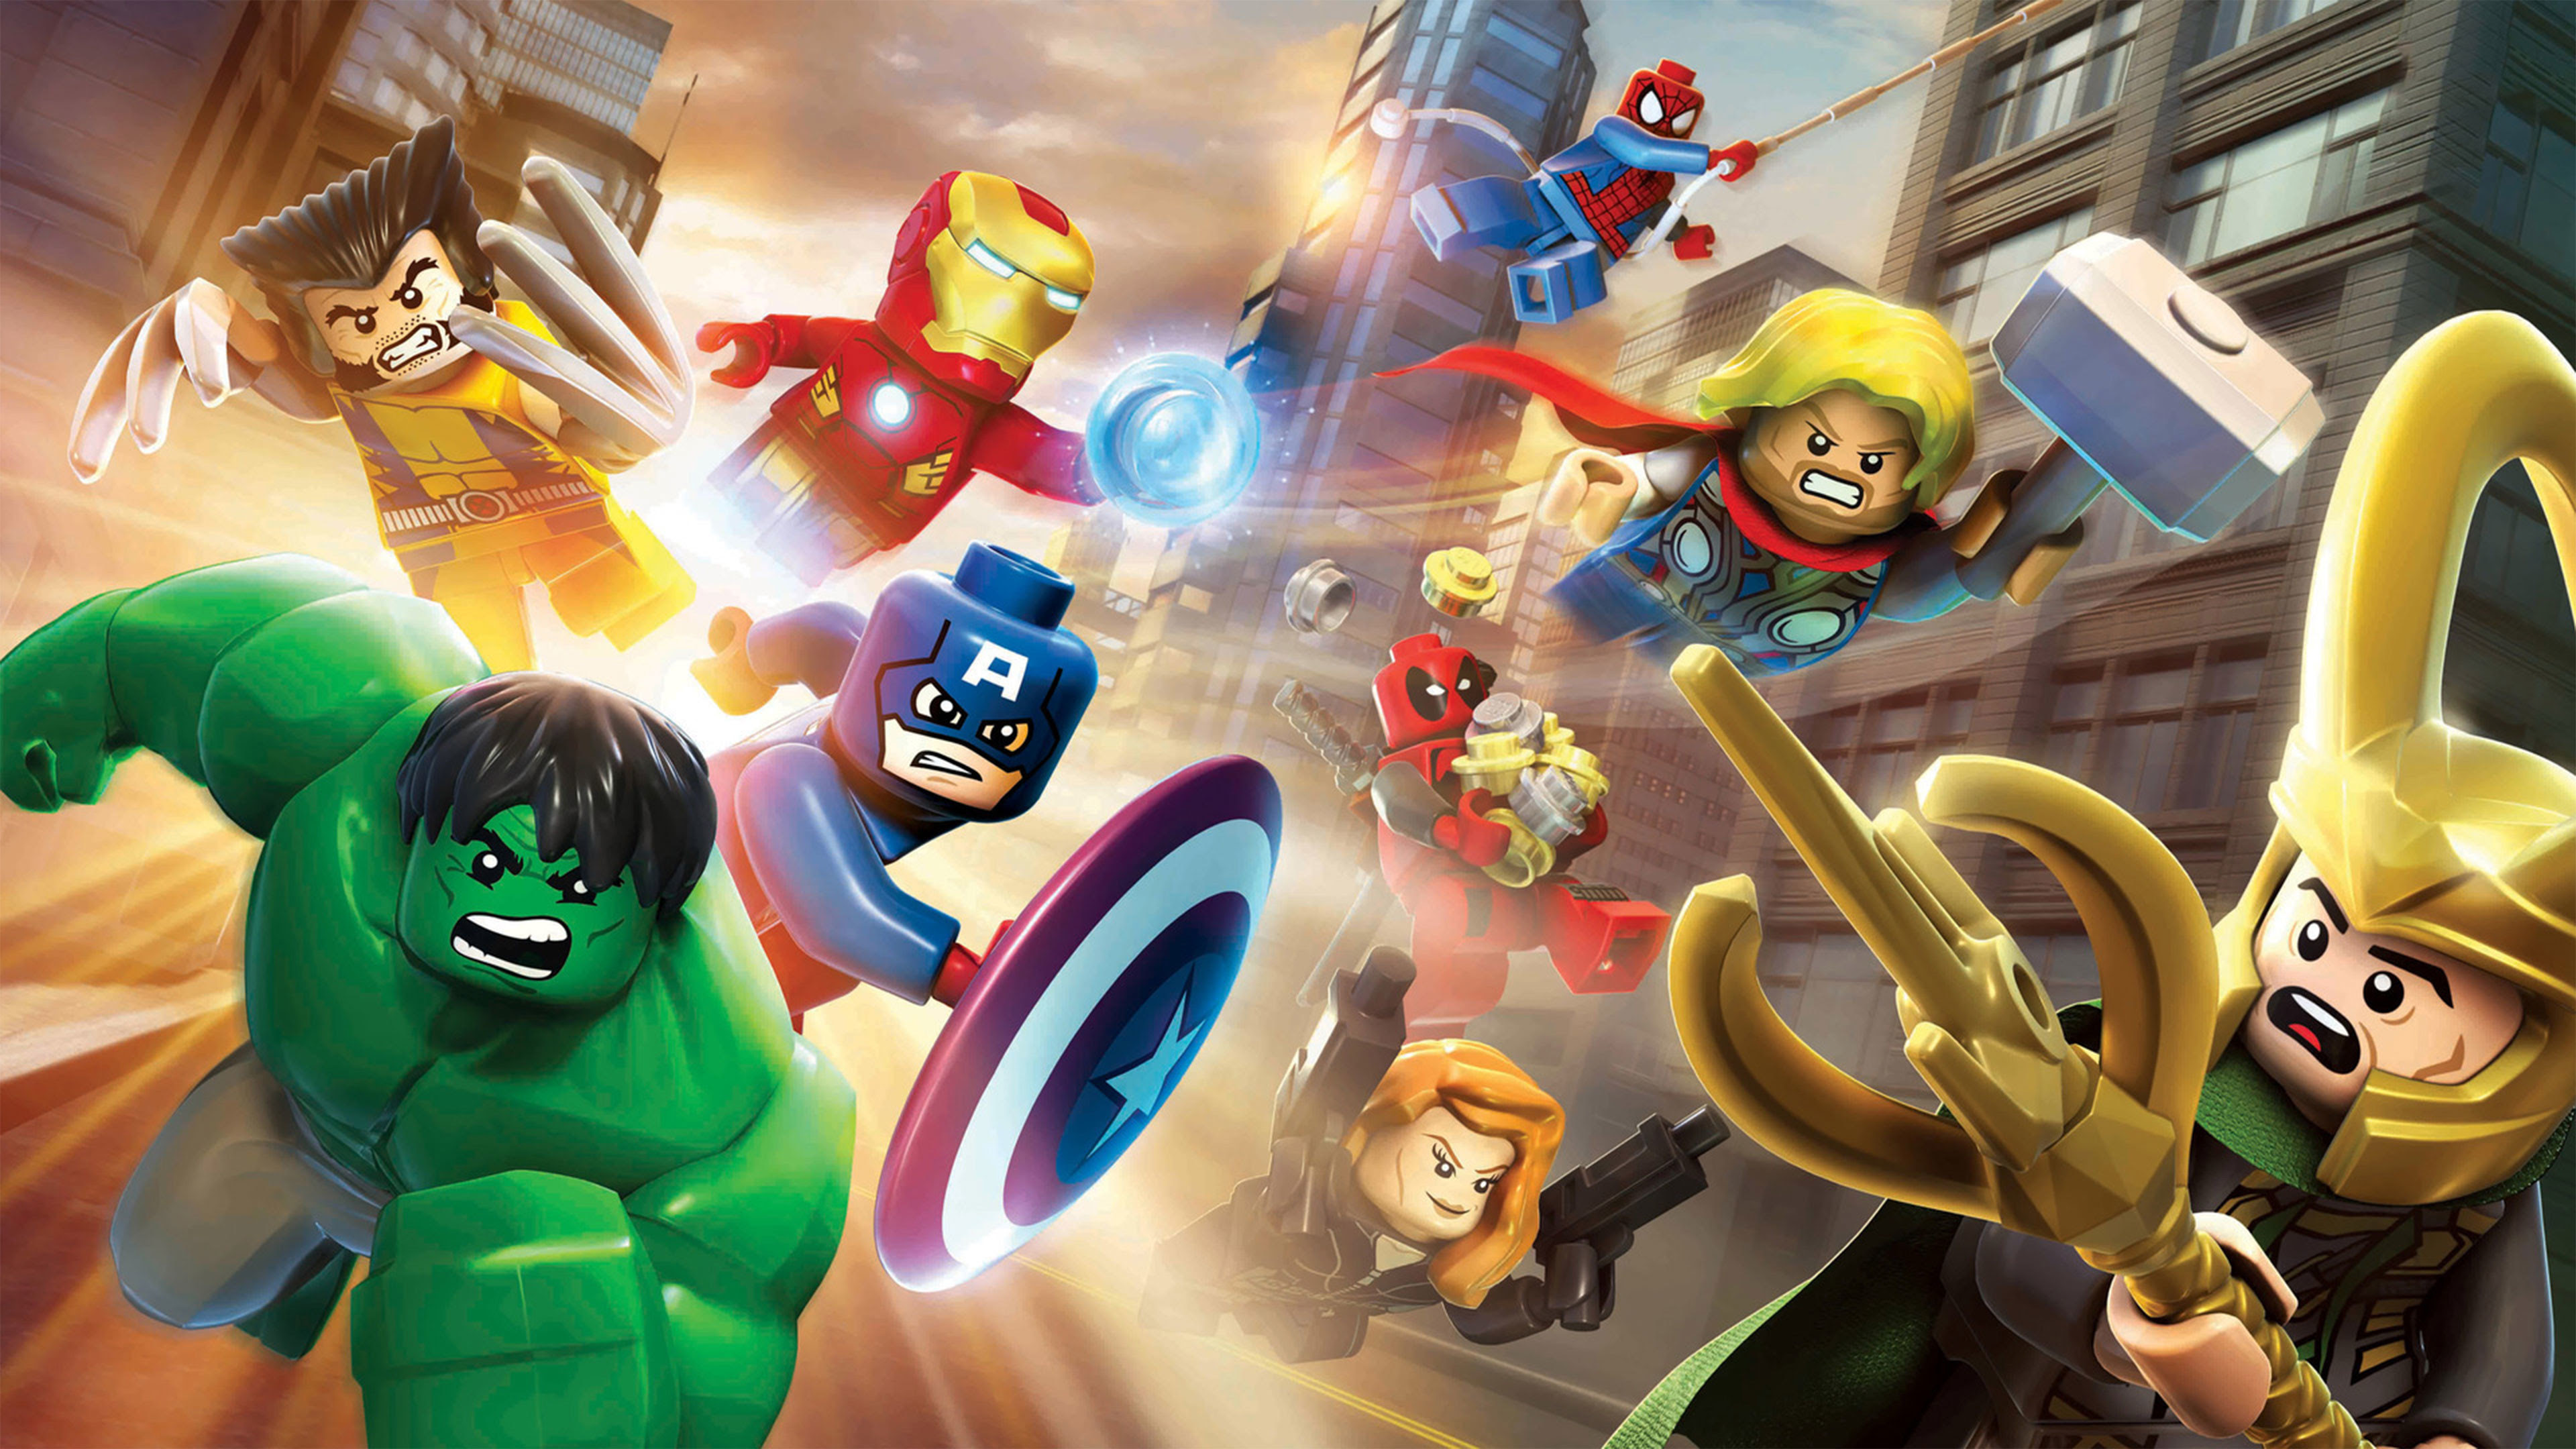 Lego Avengers Wallpaper Hd 74 Images Images, Photos, Reviews